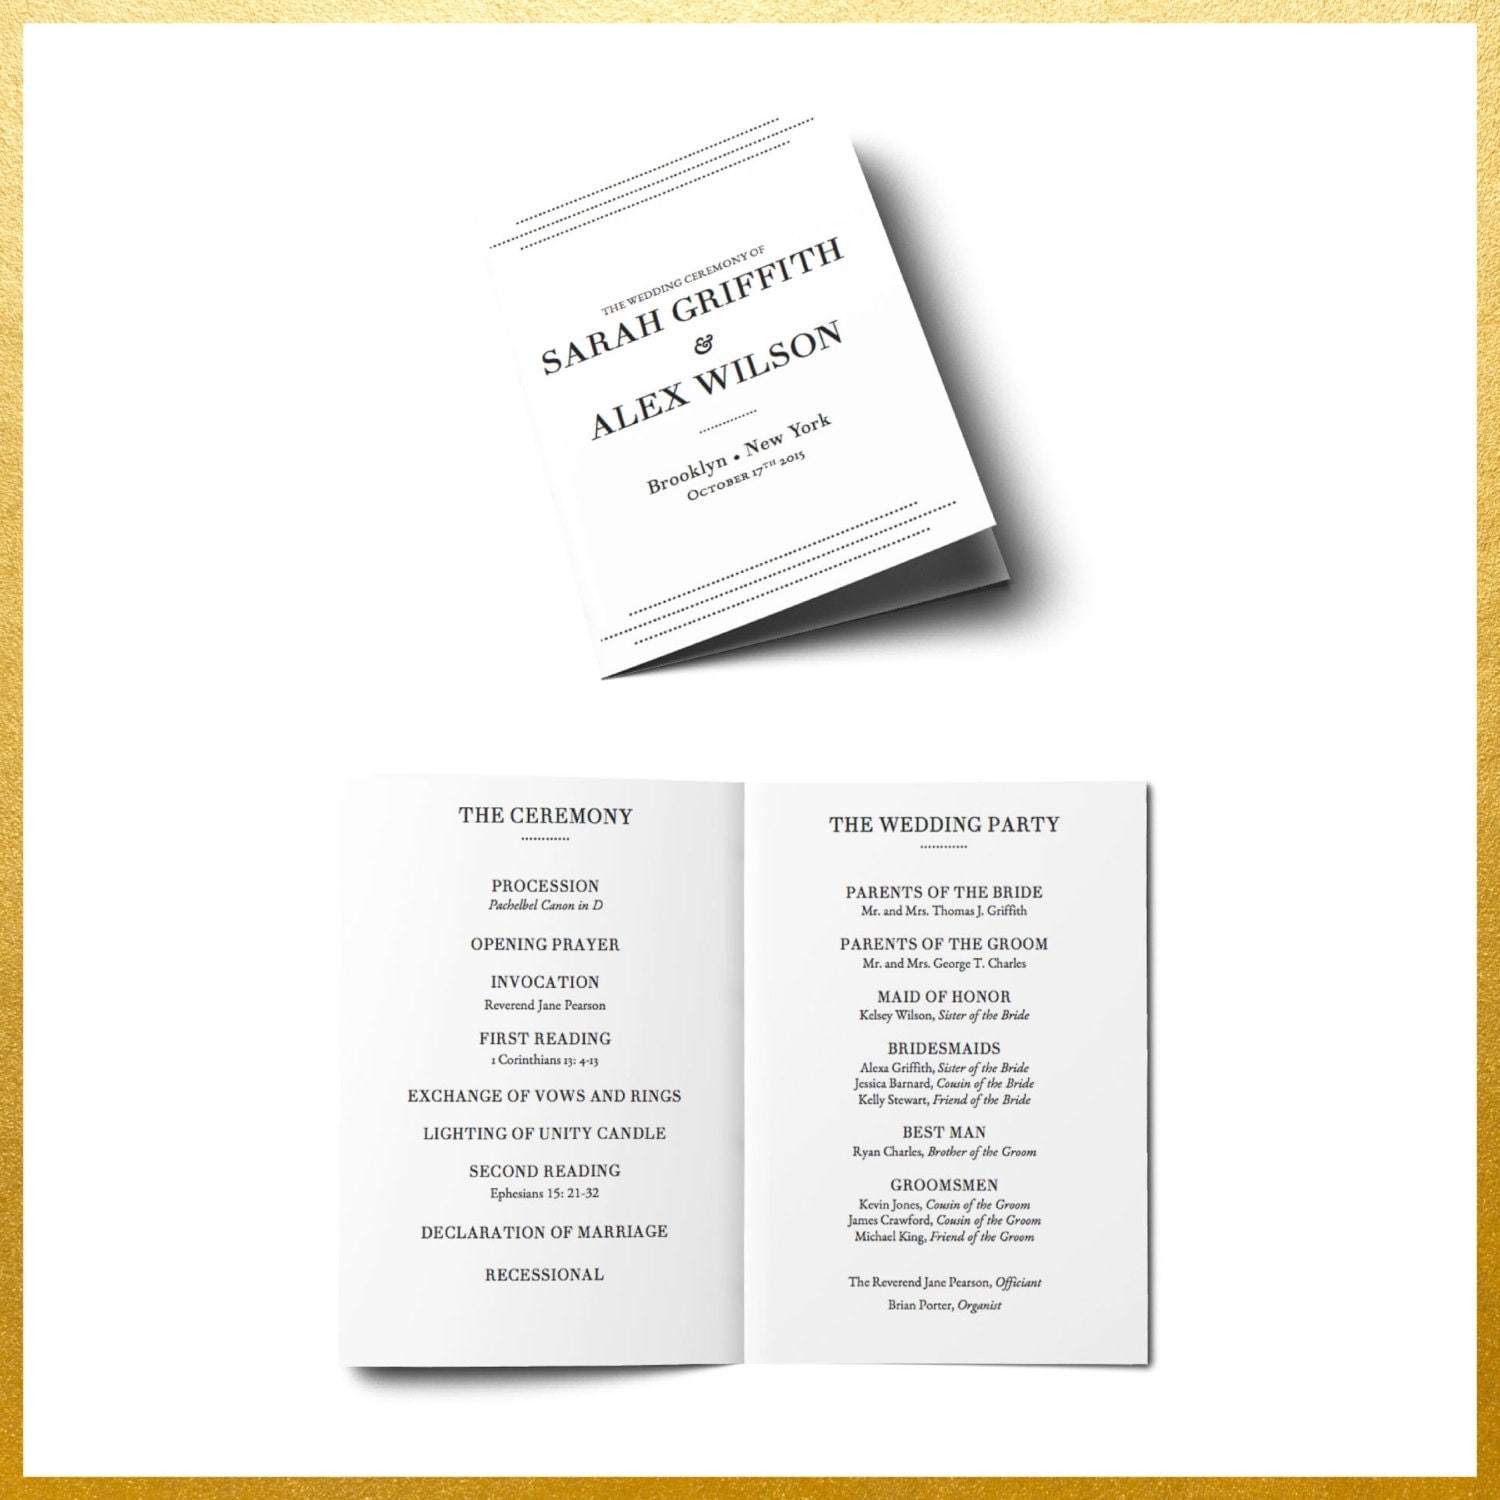 Printable Wedding Program Order Of Service Editable Ceremony - Easy wedding program template